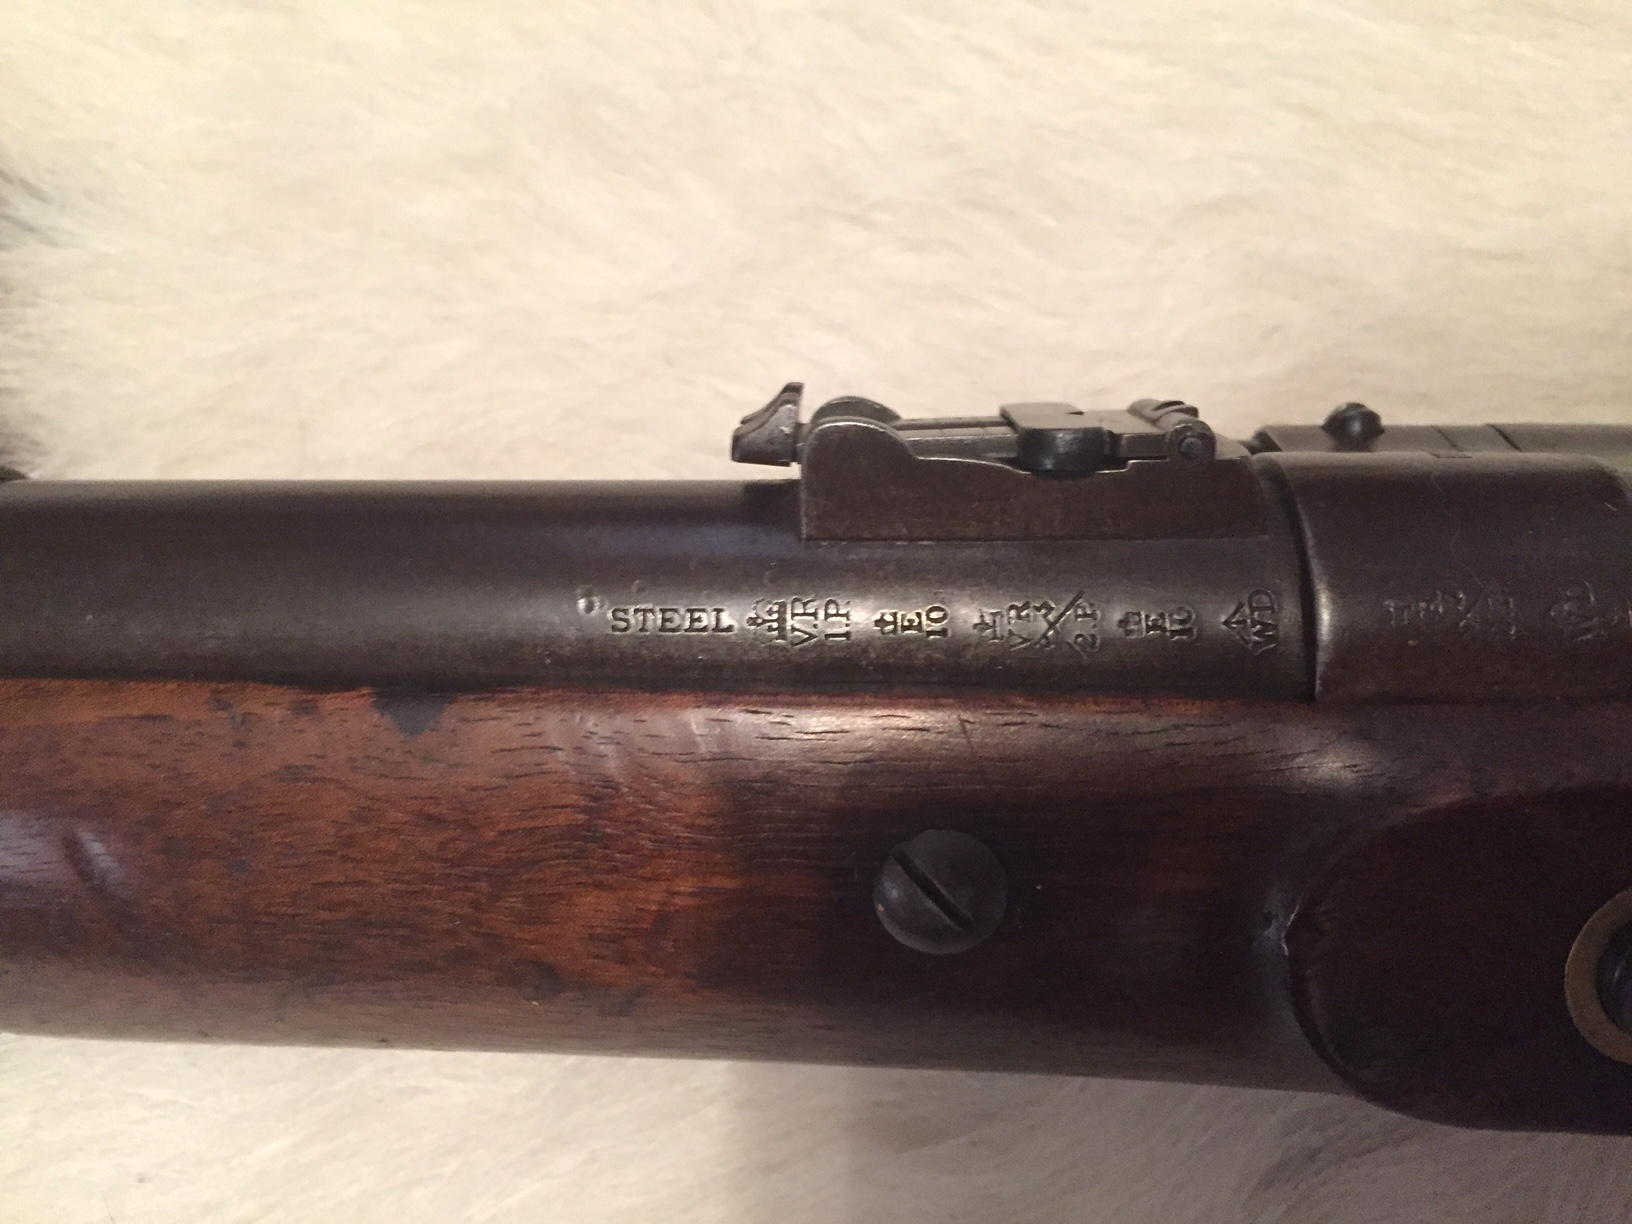 Snider Enfield Carbine - Some questions